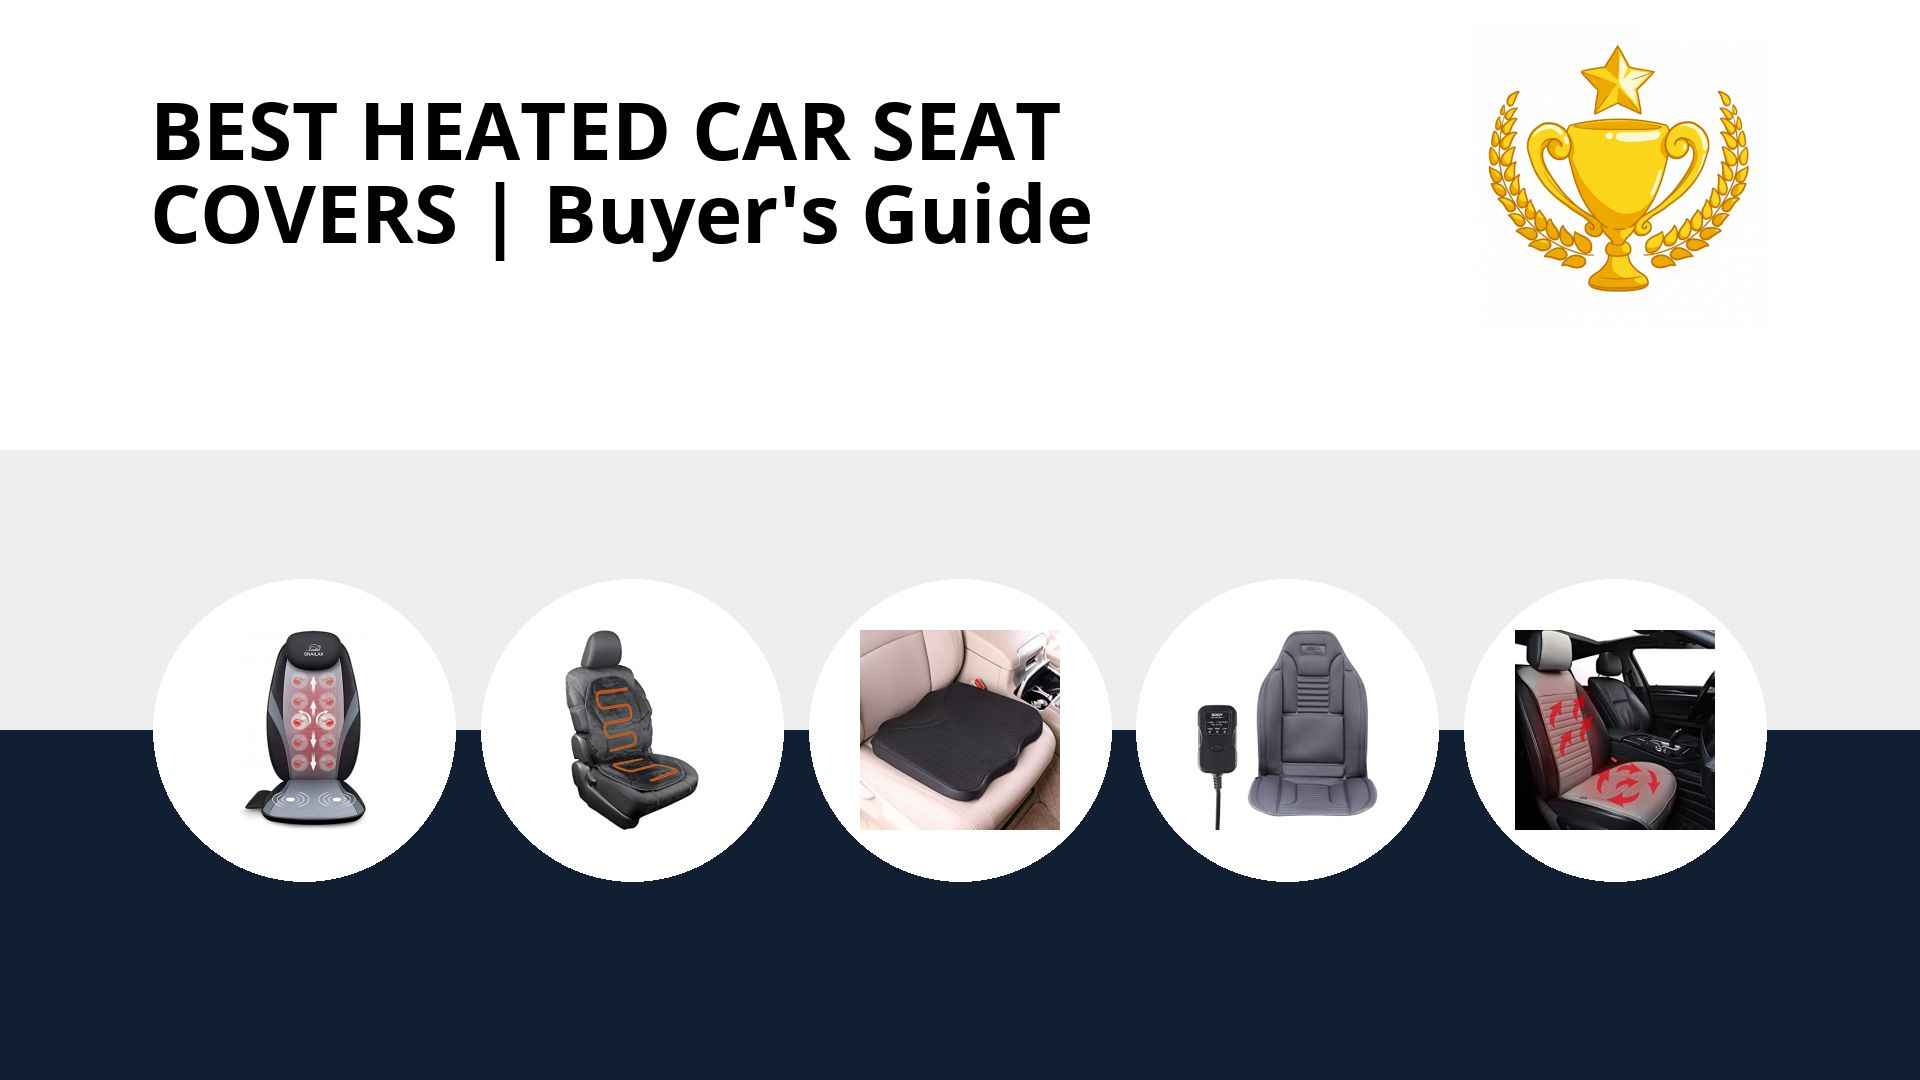 Best Heated Car Seat Covers: image